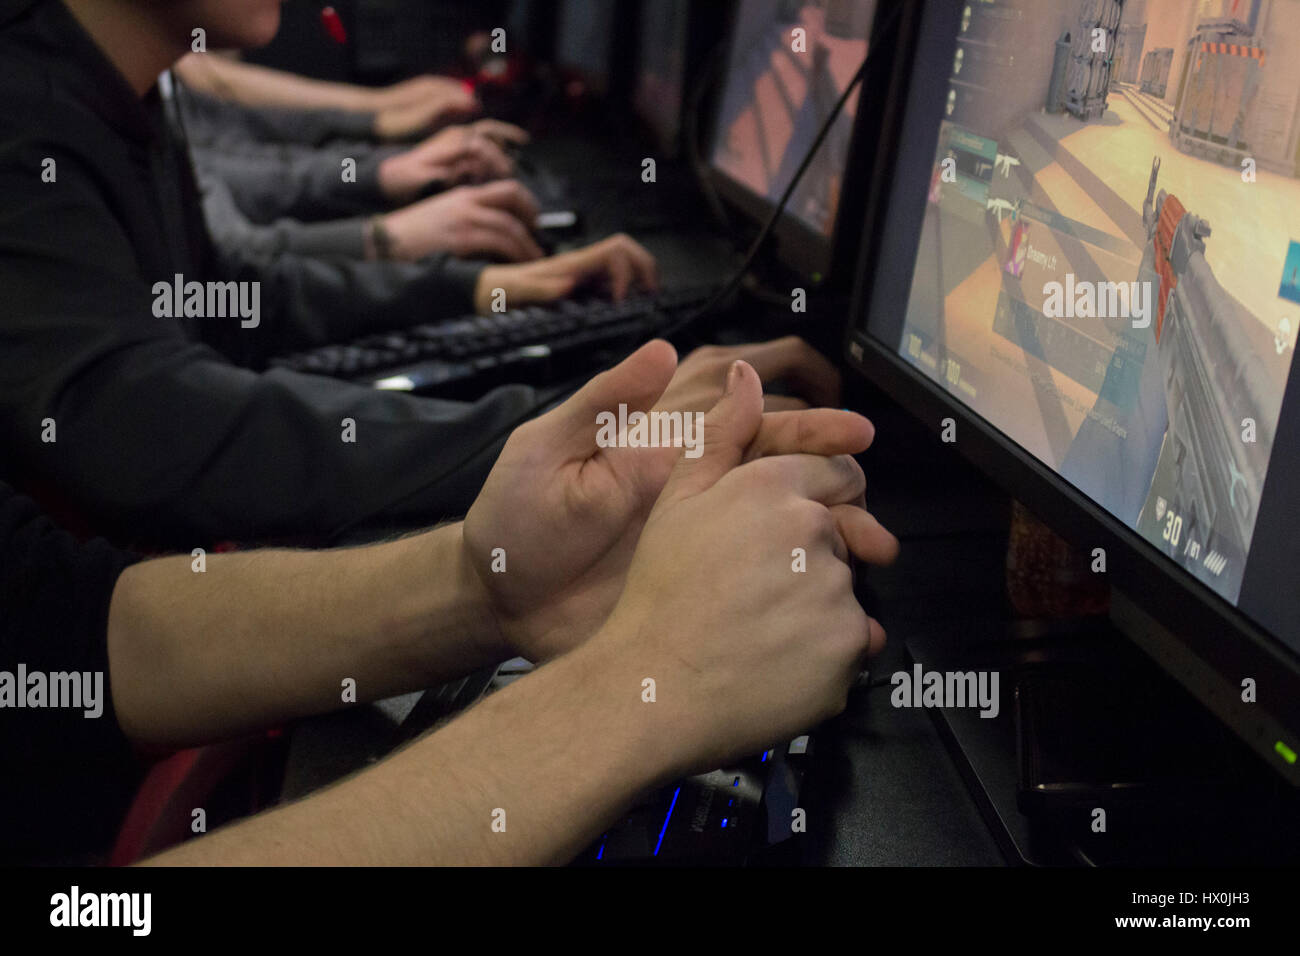 Teams play in 5V5 counter strike global offensive LAN at talk and surf gaming in Cardiff, Wales. - Stock Image